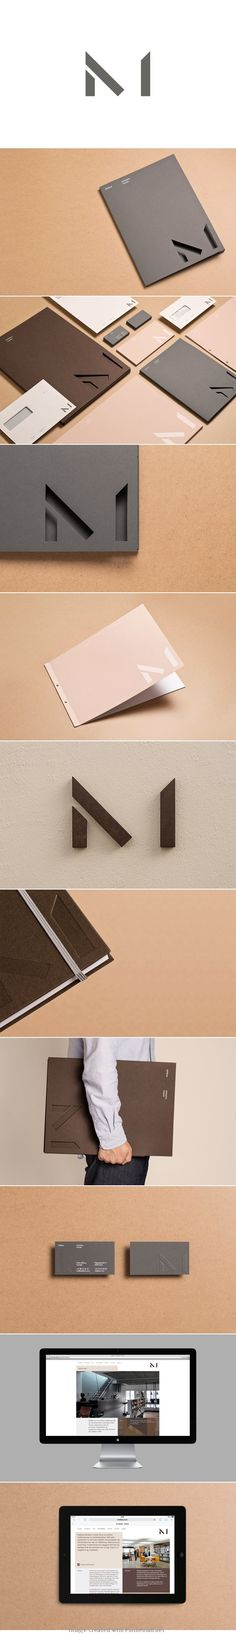 Fantastic visual identity for Mellbye Architects by Heydays, Oslo